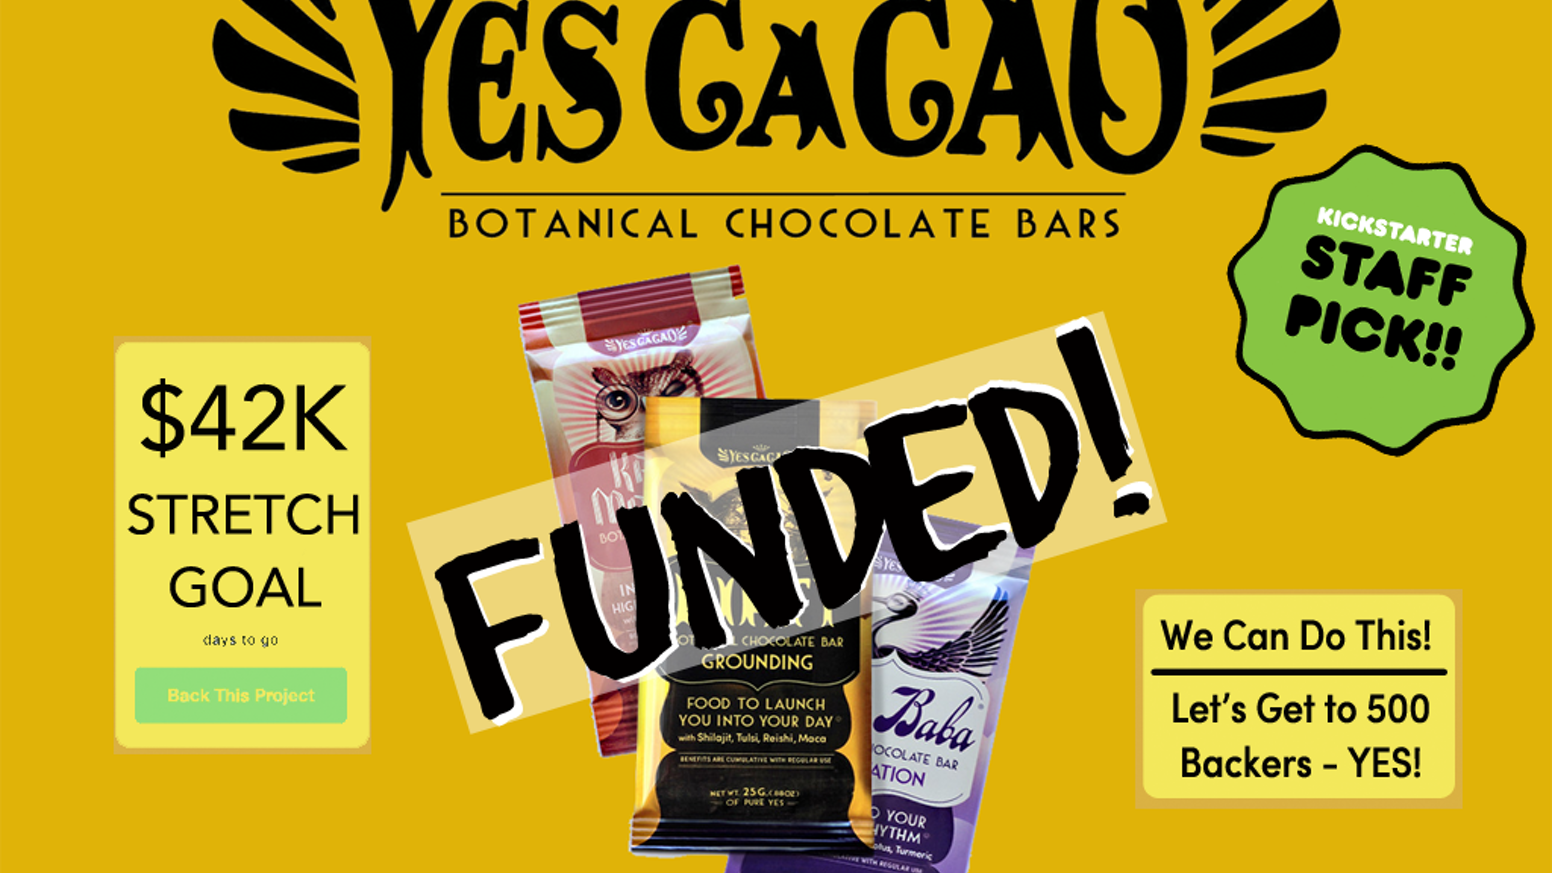 Food You Can Feel: Yes CaCao Botanical Chocolate as a delivery system for a daily dose of vibrant health. Make a Wish & Take a Bite.